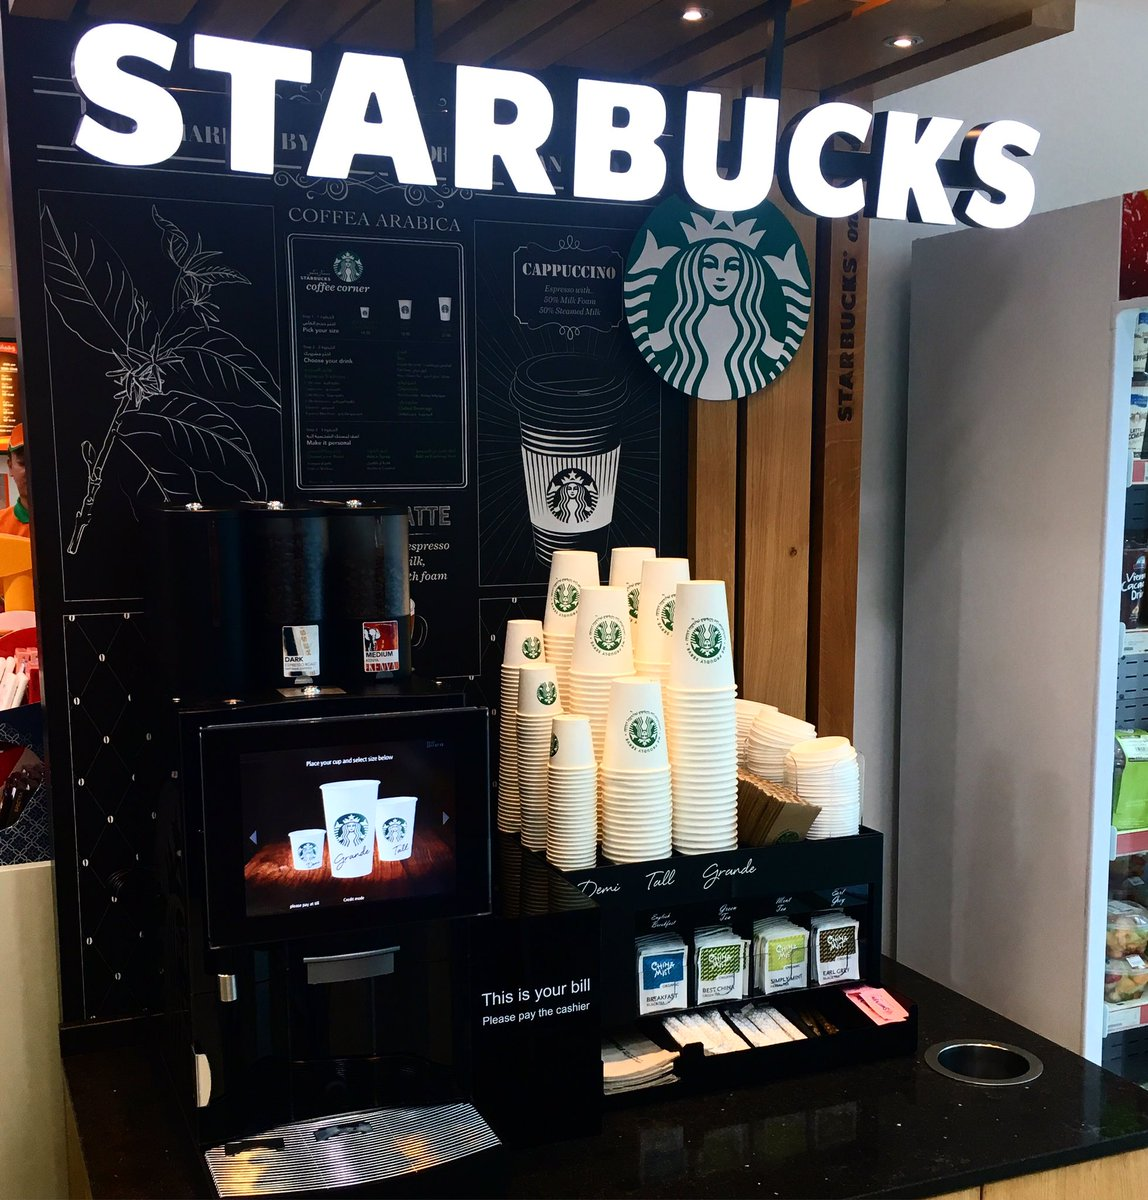 On Twitter Starbucks The Go Coffee Available At WOQOD TOWER SIDRA Convenient Store